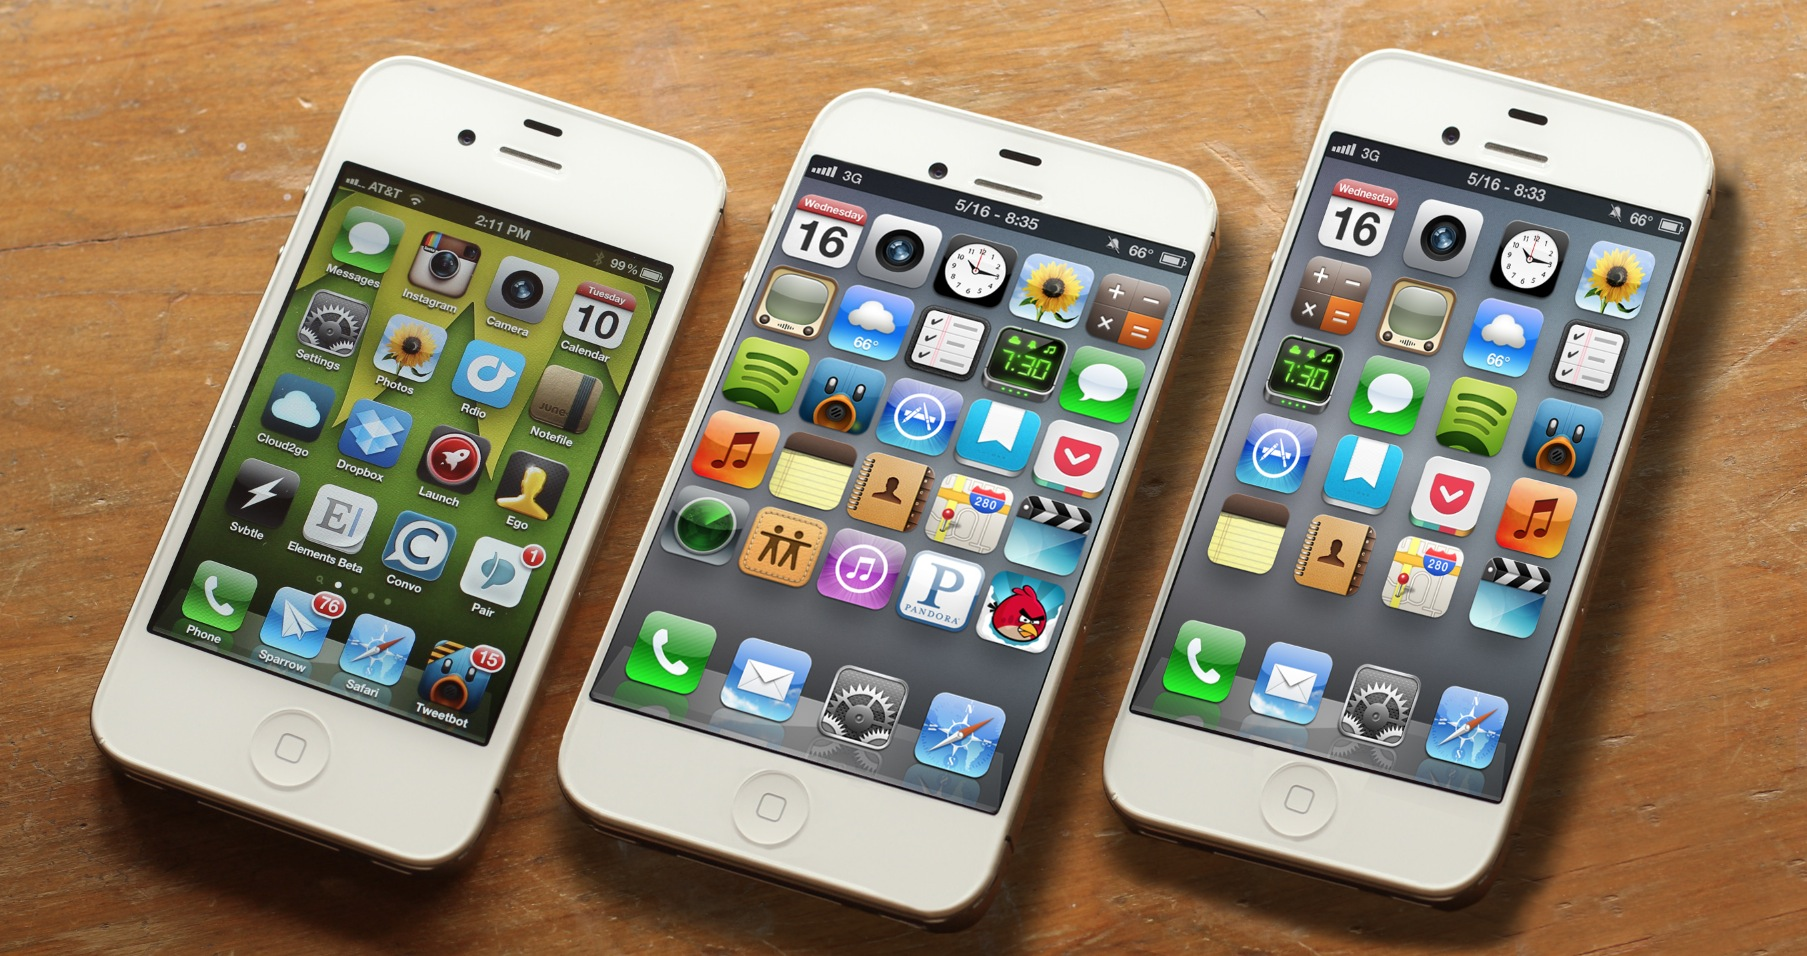 Apple secures rights to iPhone5.com domain name